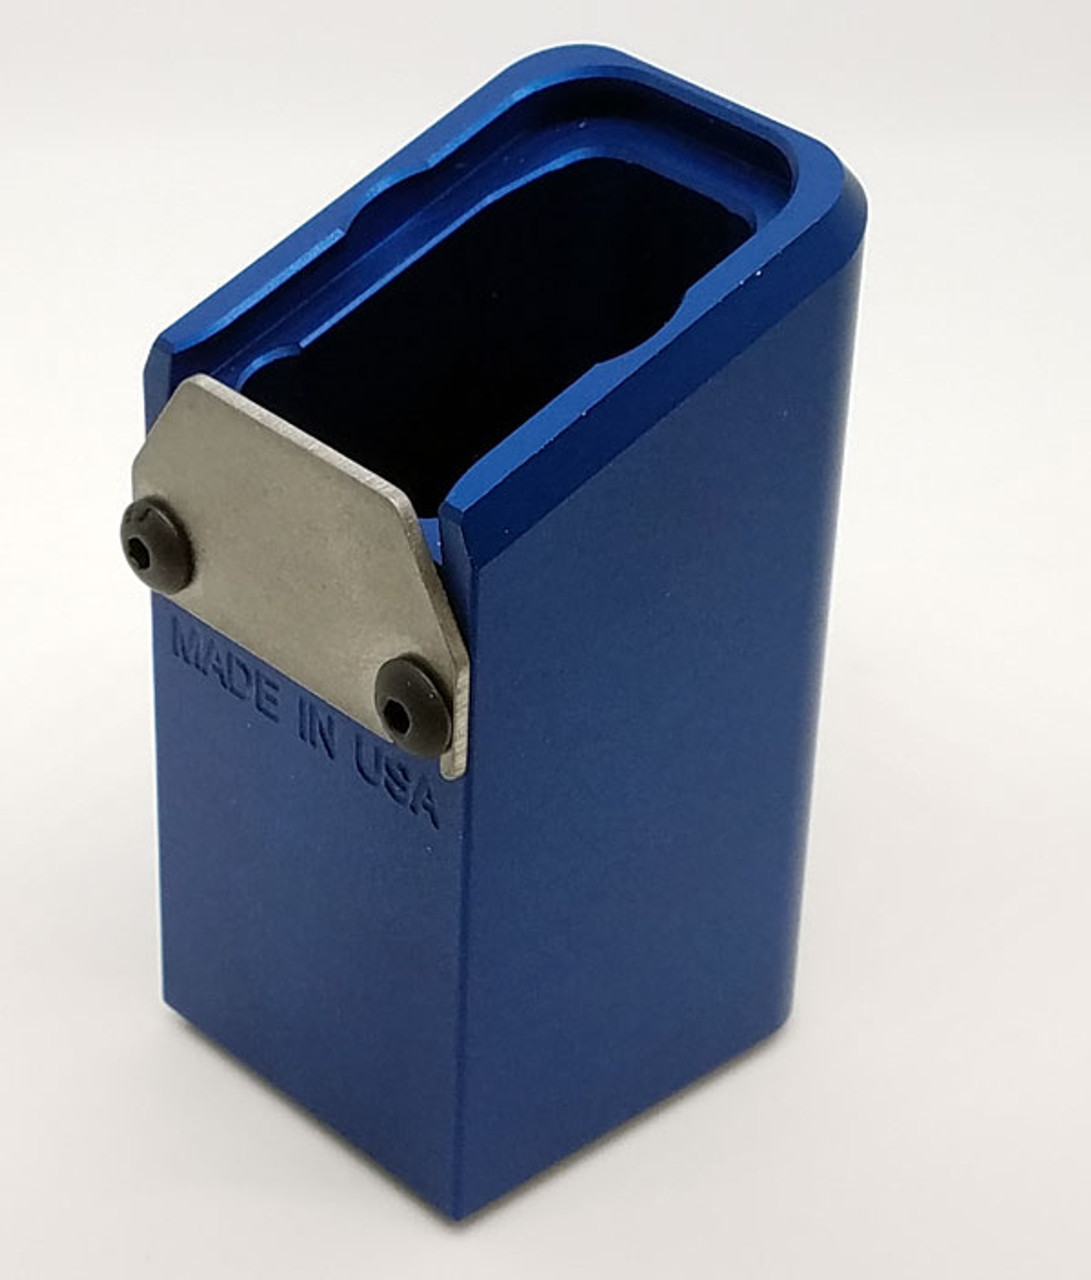 GLOCK +12 FOR 9MM, BLUE-ANODIZED ALUMINUM w/spring